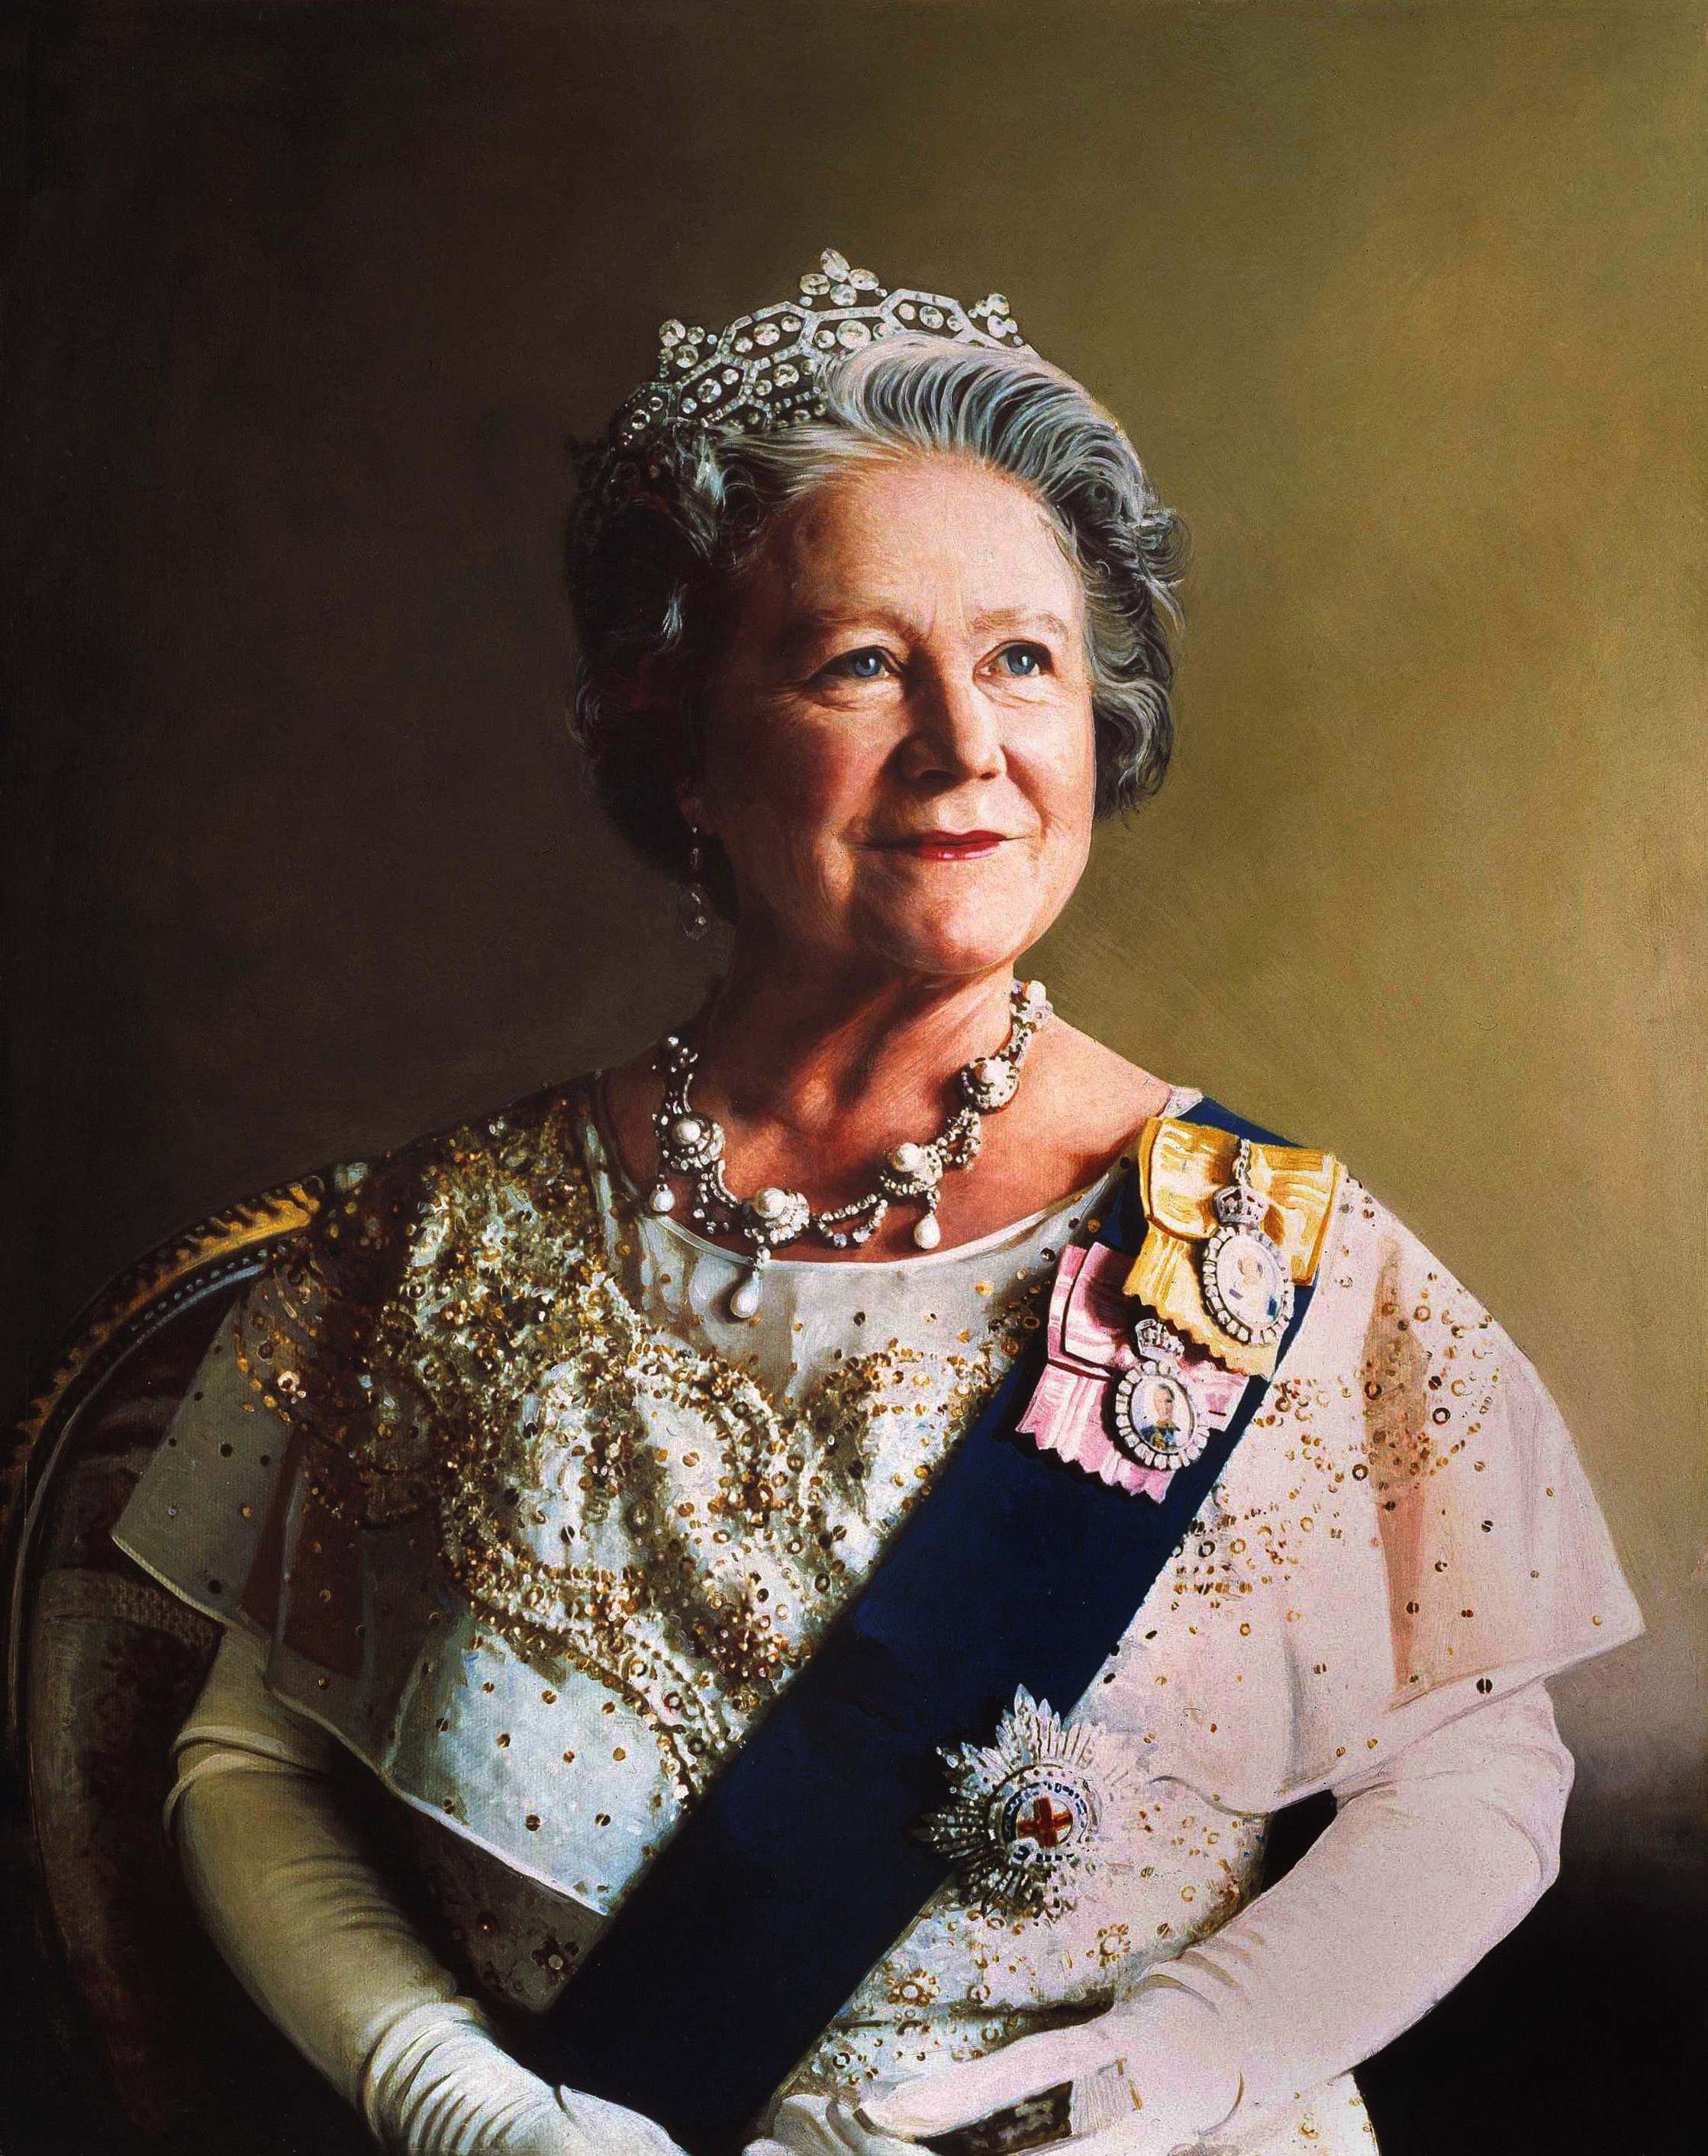 http://upload.wikimedia.org/wikipedia/commons/2/2d/Queen_Elizabeth_the_Queen_Mother_portrait.jpg